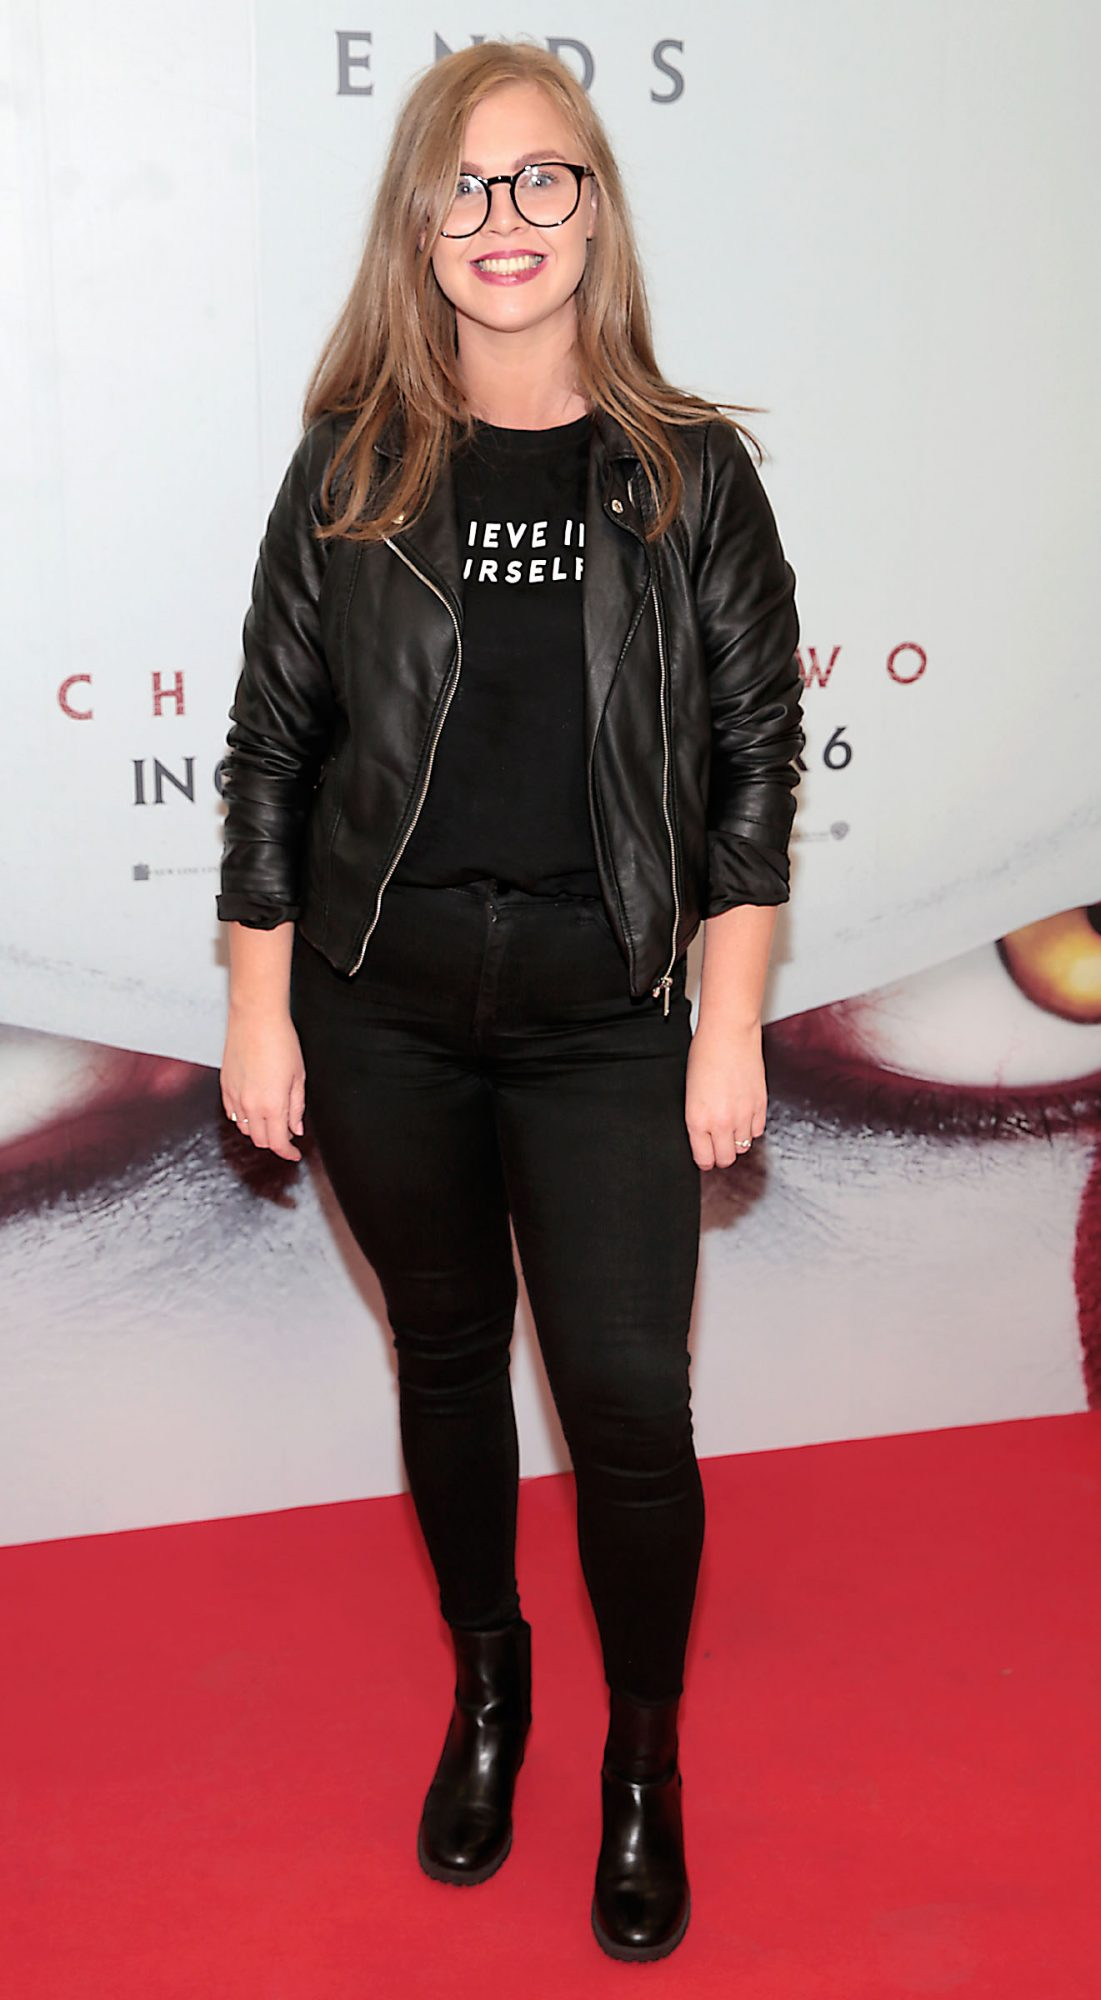 Shannen Keenan at the Irish premiere of IT Chapter 2 at the Odeon Cinema in Point Square, Dublin. Pic: Brian McEvoy.